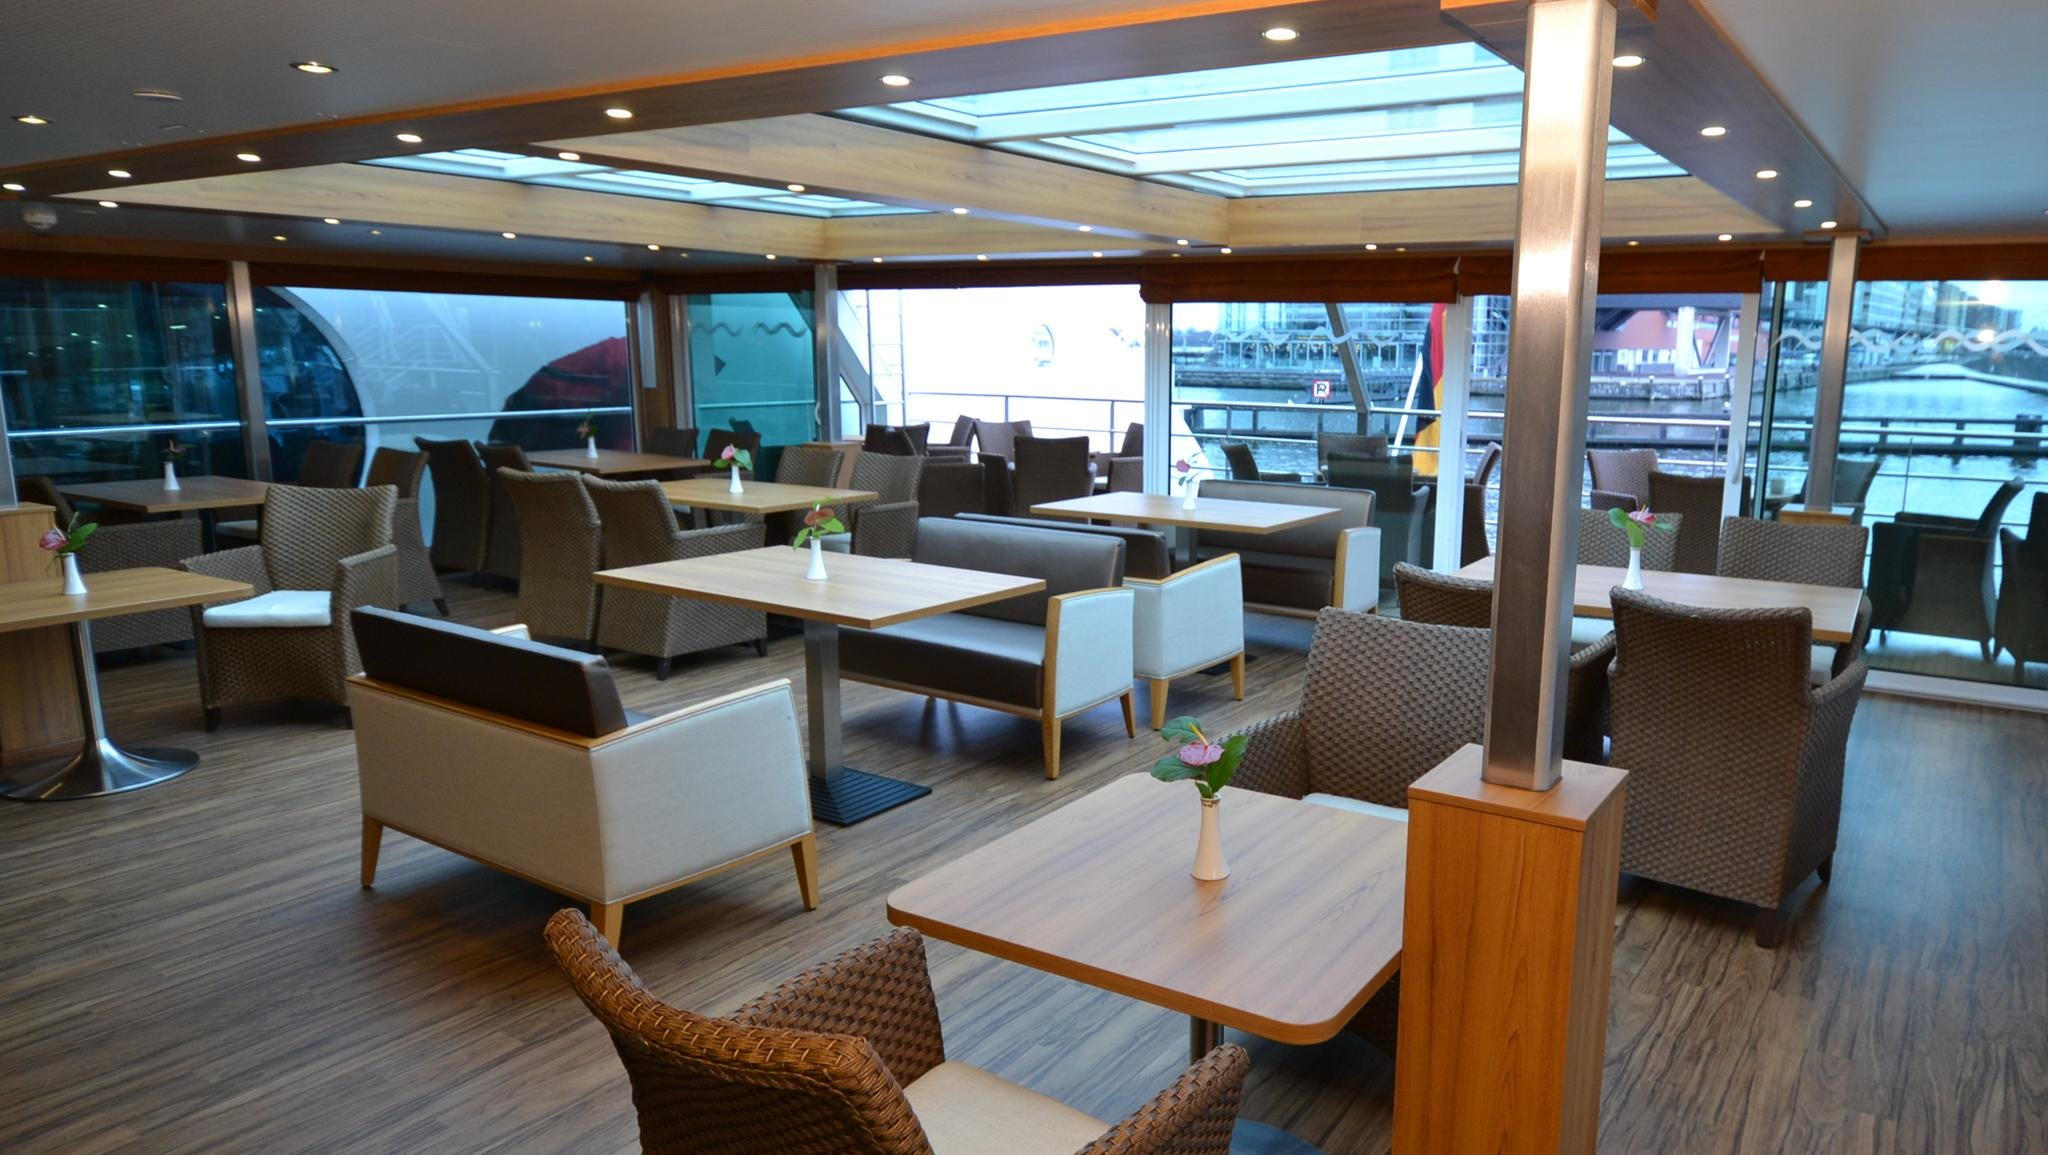 In addition to the main Latitude 52 Lounge, the ship has a smaller gathering area at its back called the Captain's Club.